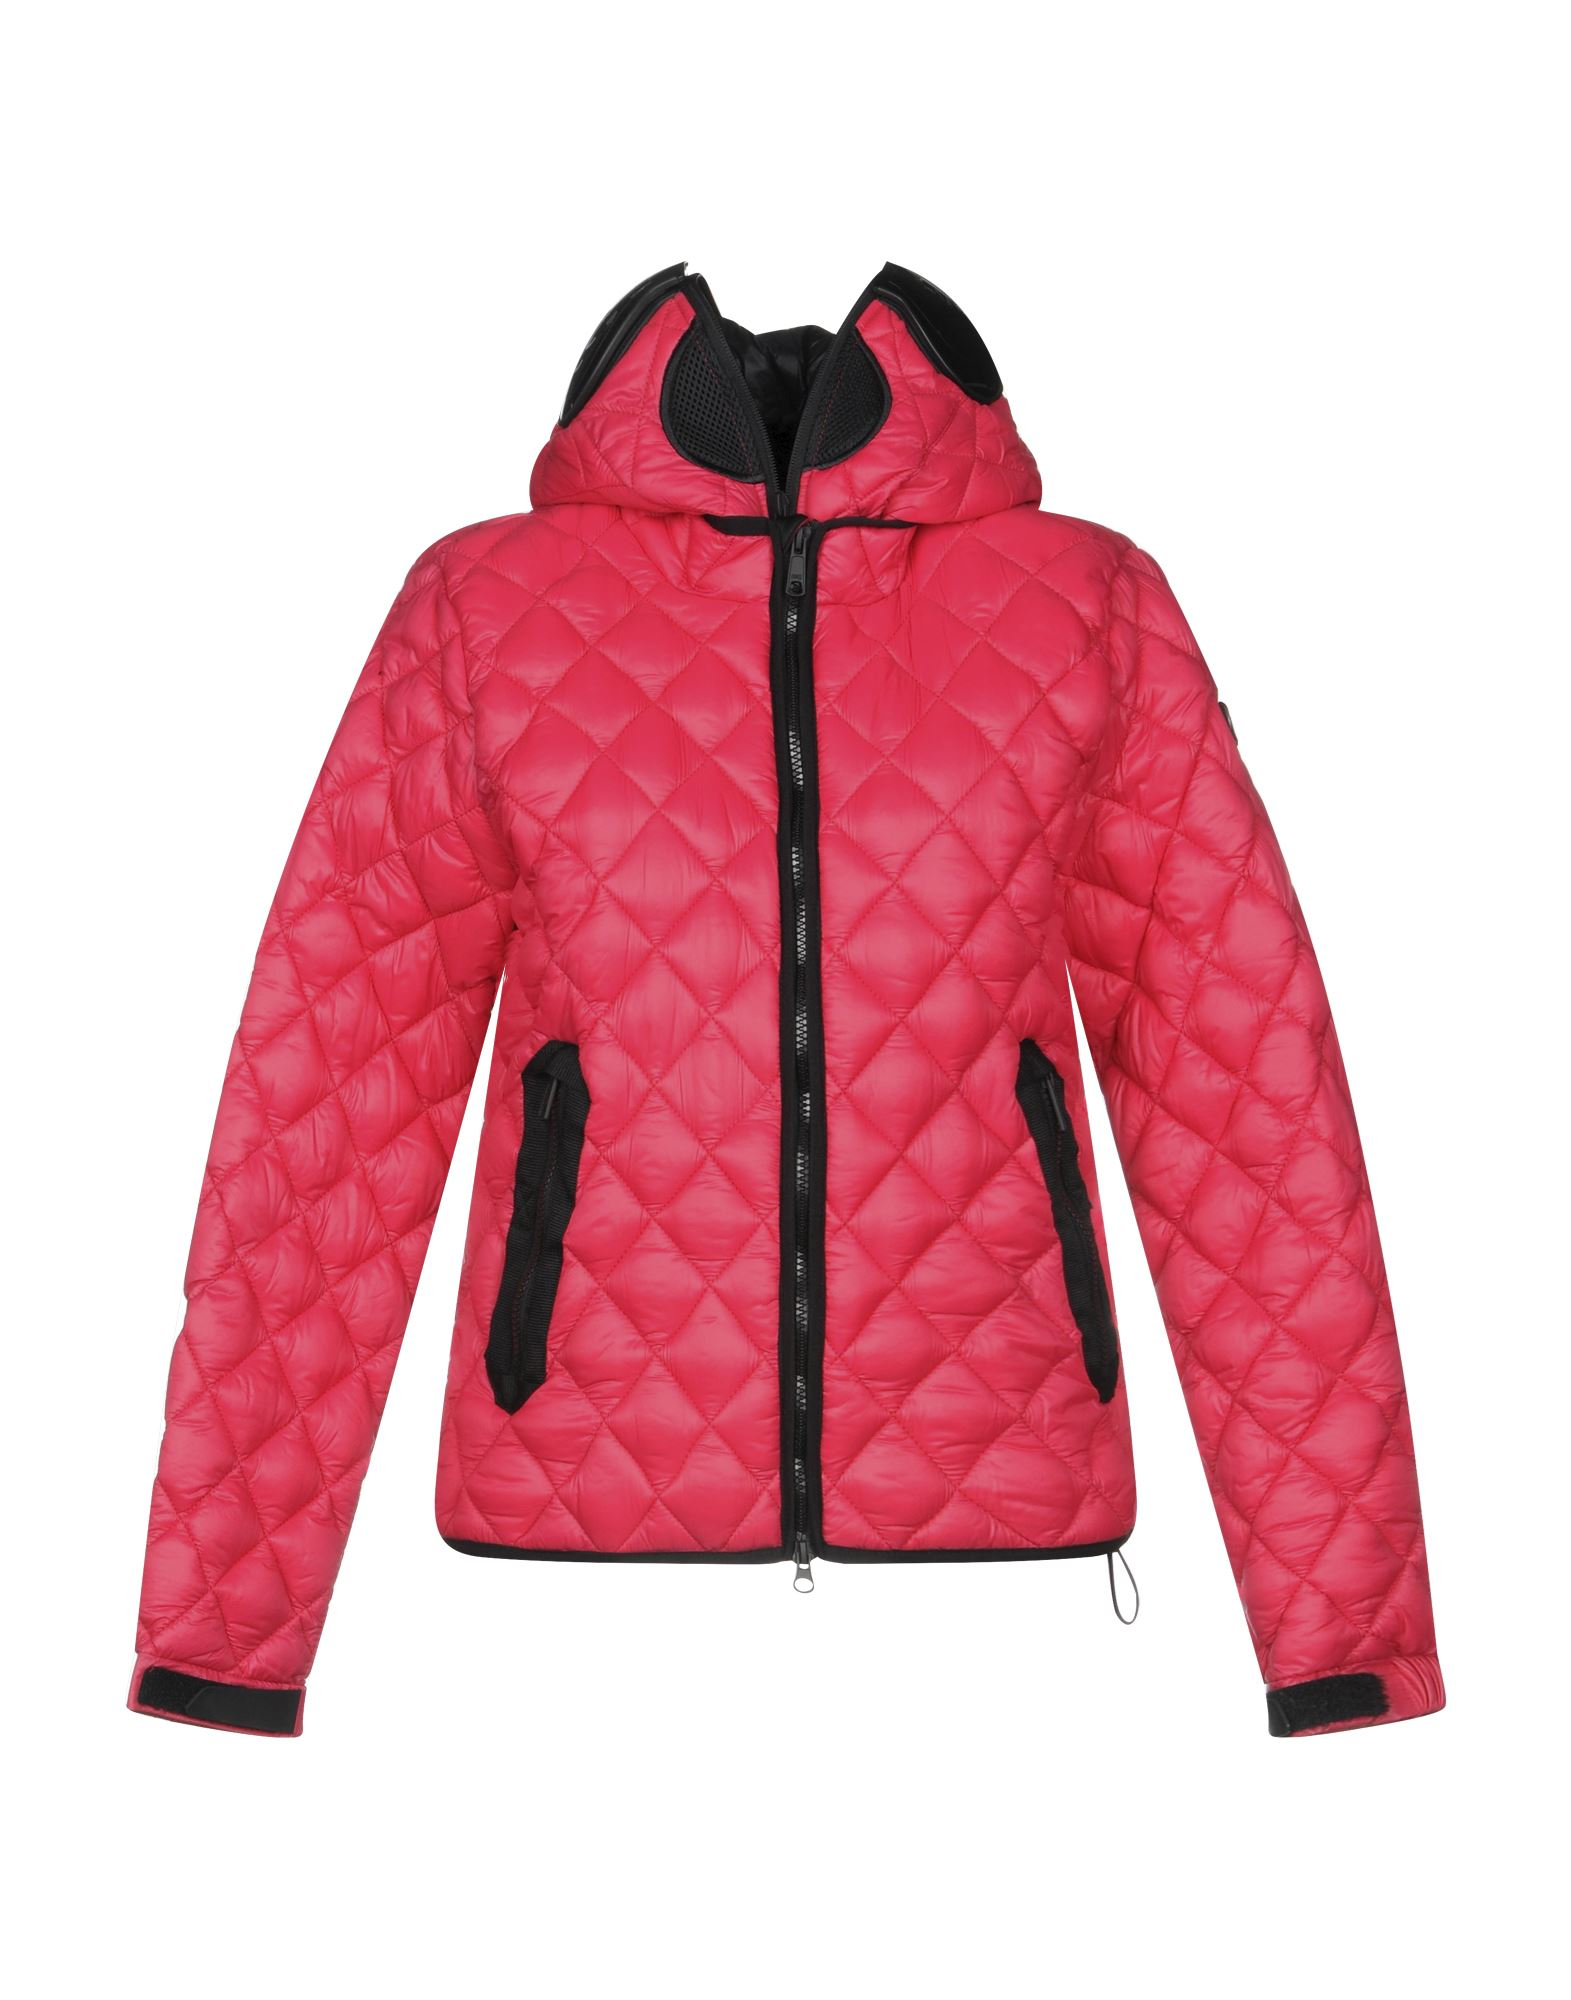 AI RIDERS ON THE STORM Synthetic Padding in Fuchsia